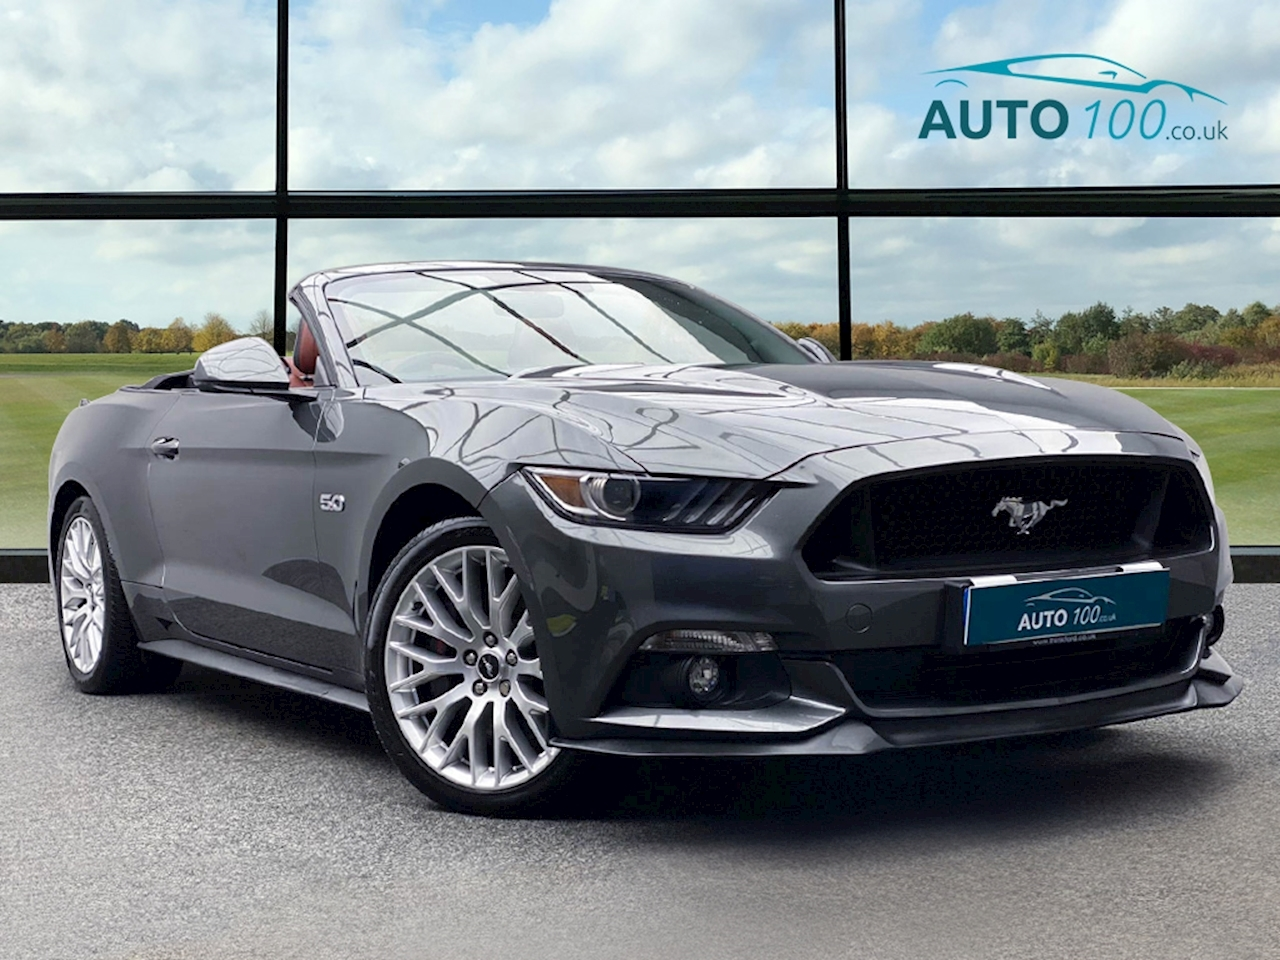 Ford 5.0 V8 GT Convertible 2dr Petrol SelShift (416 bhp)